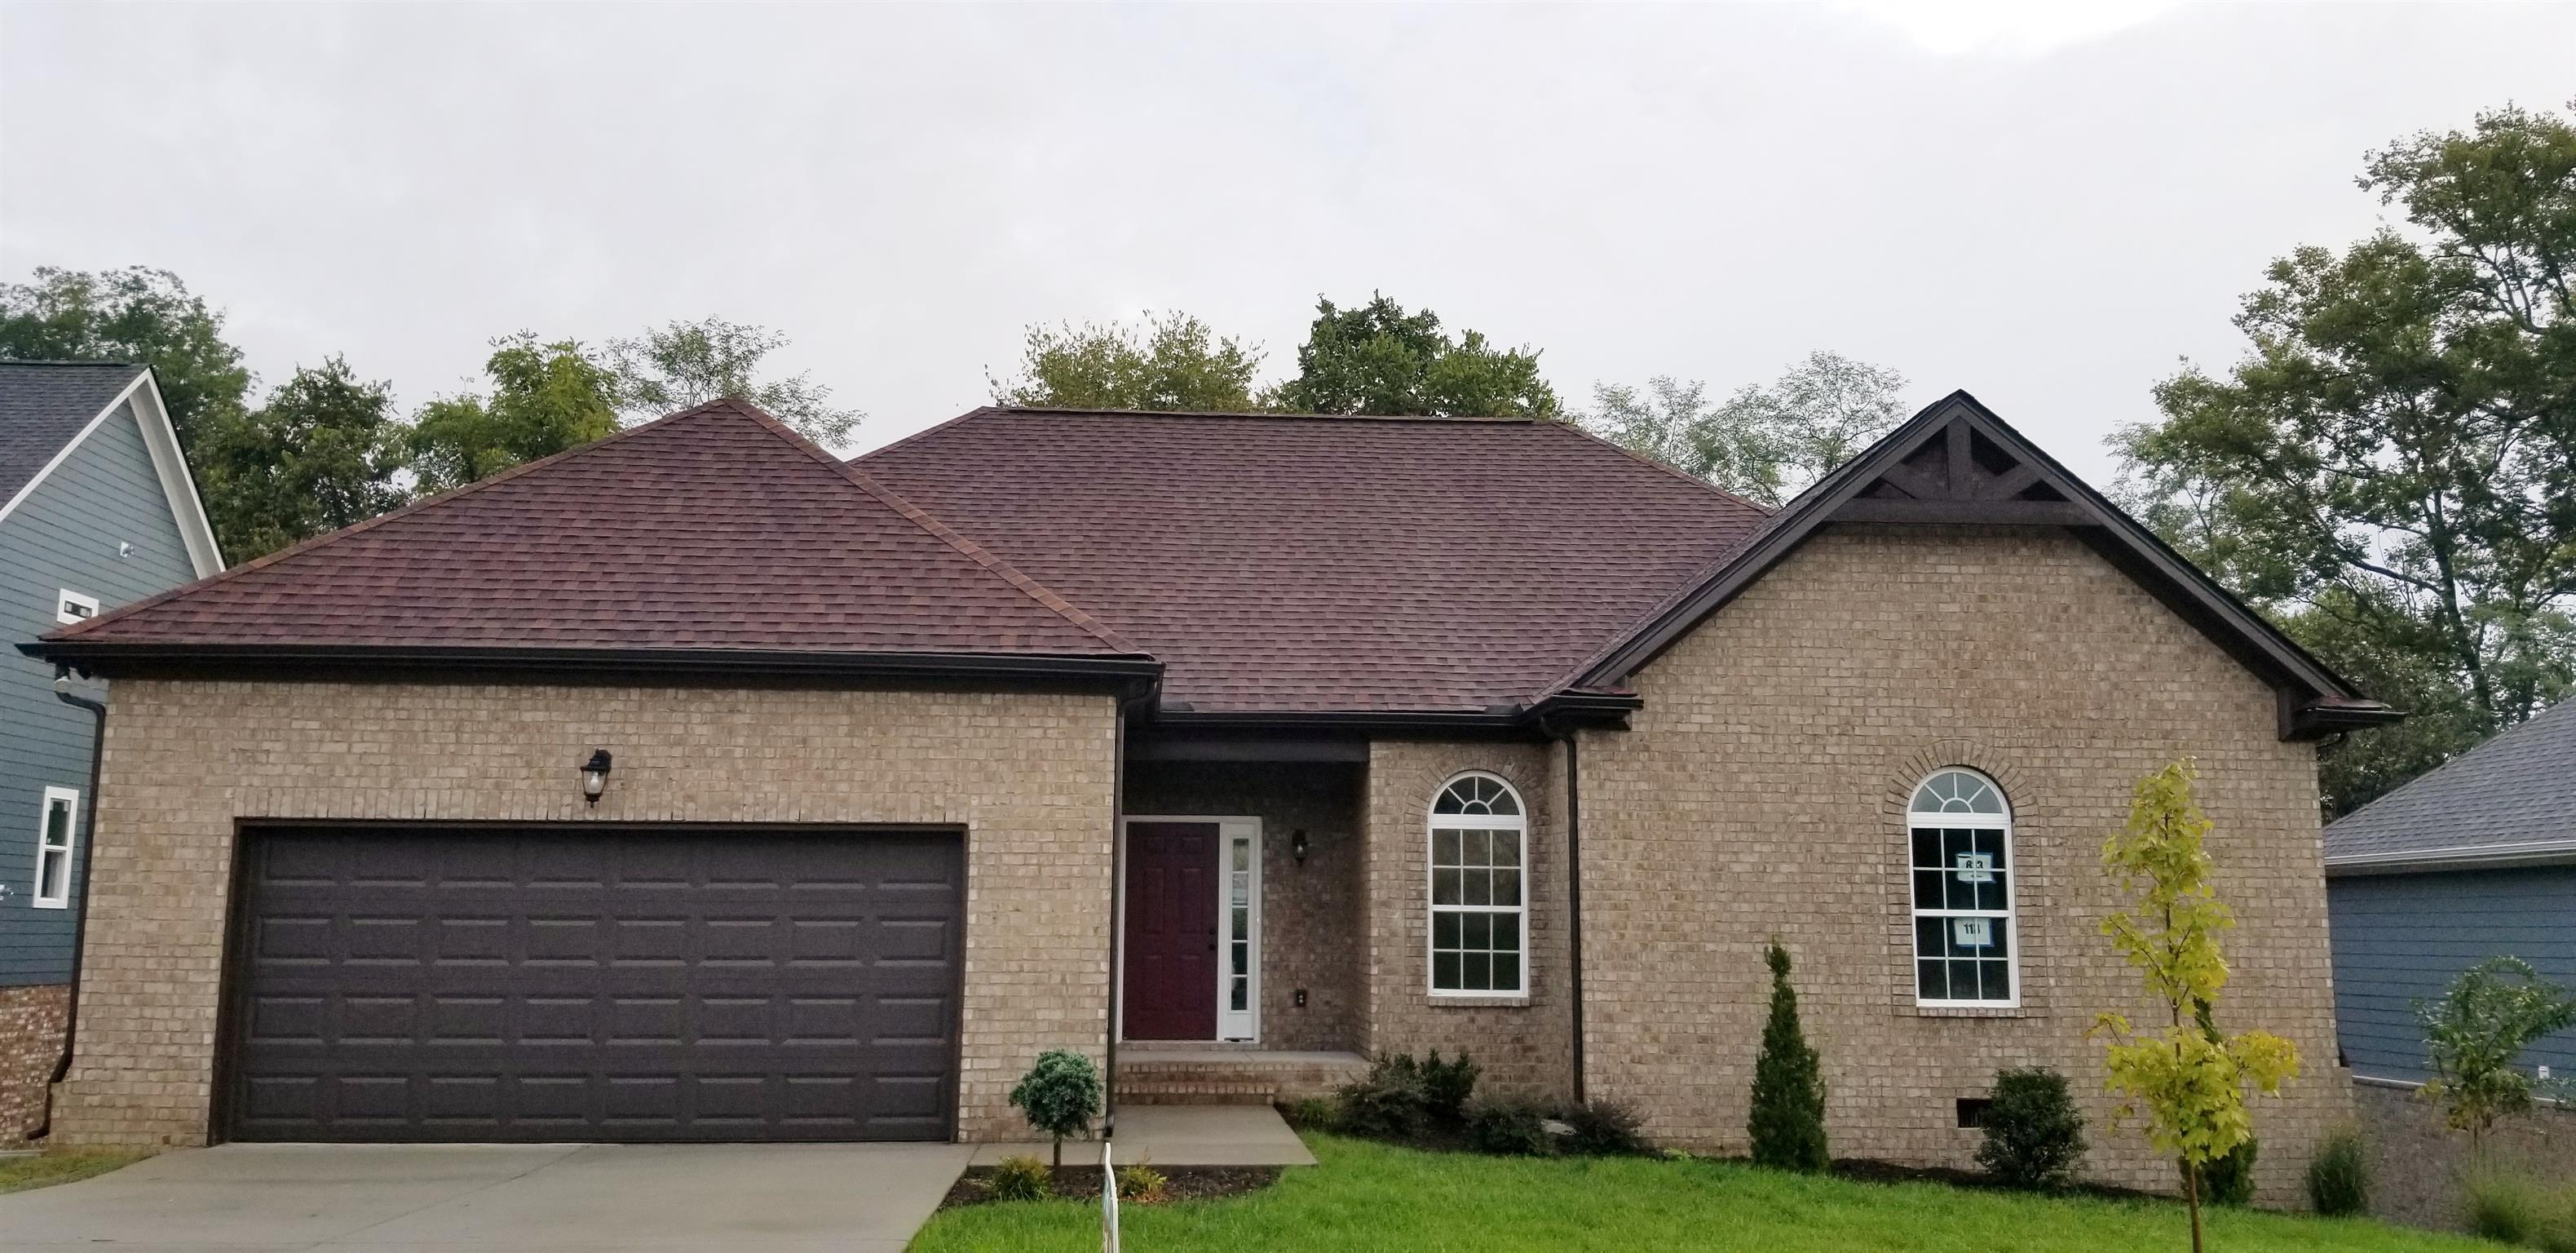 813 Tanager Pl, Lebanon in Wilson County County, TN 37087 Home for Sale